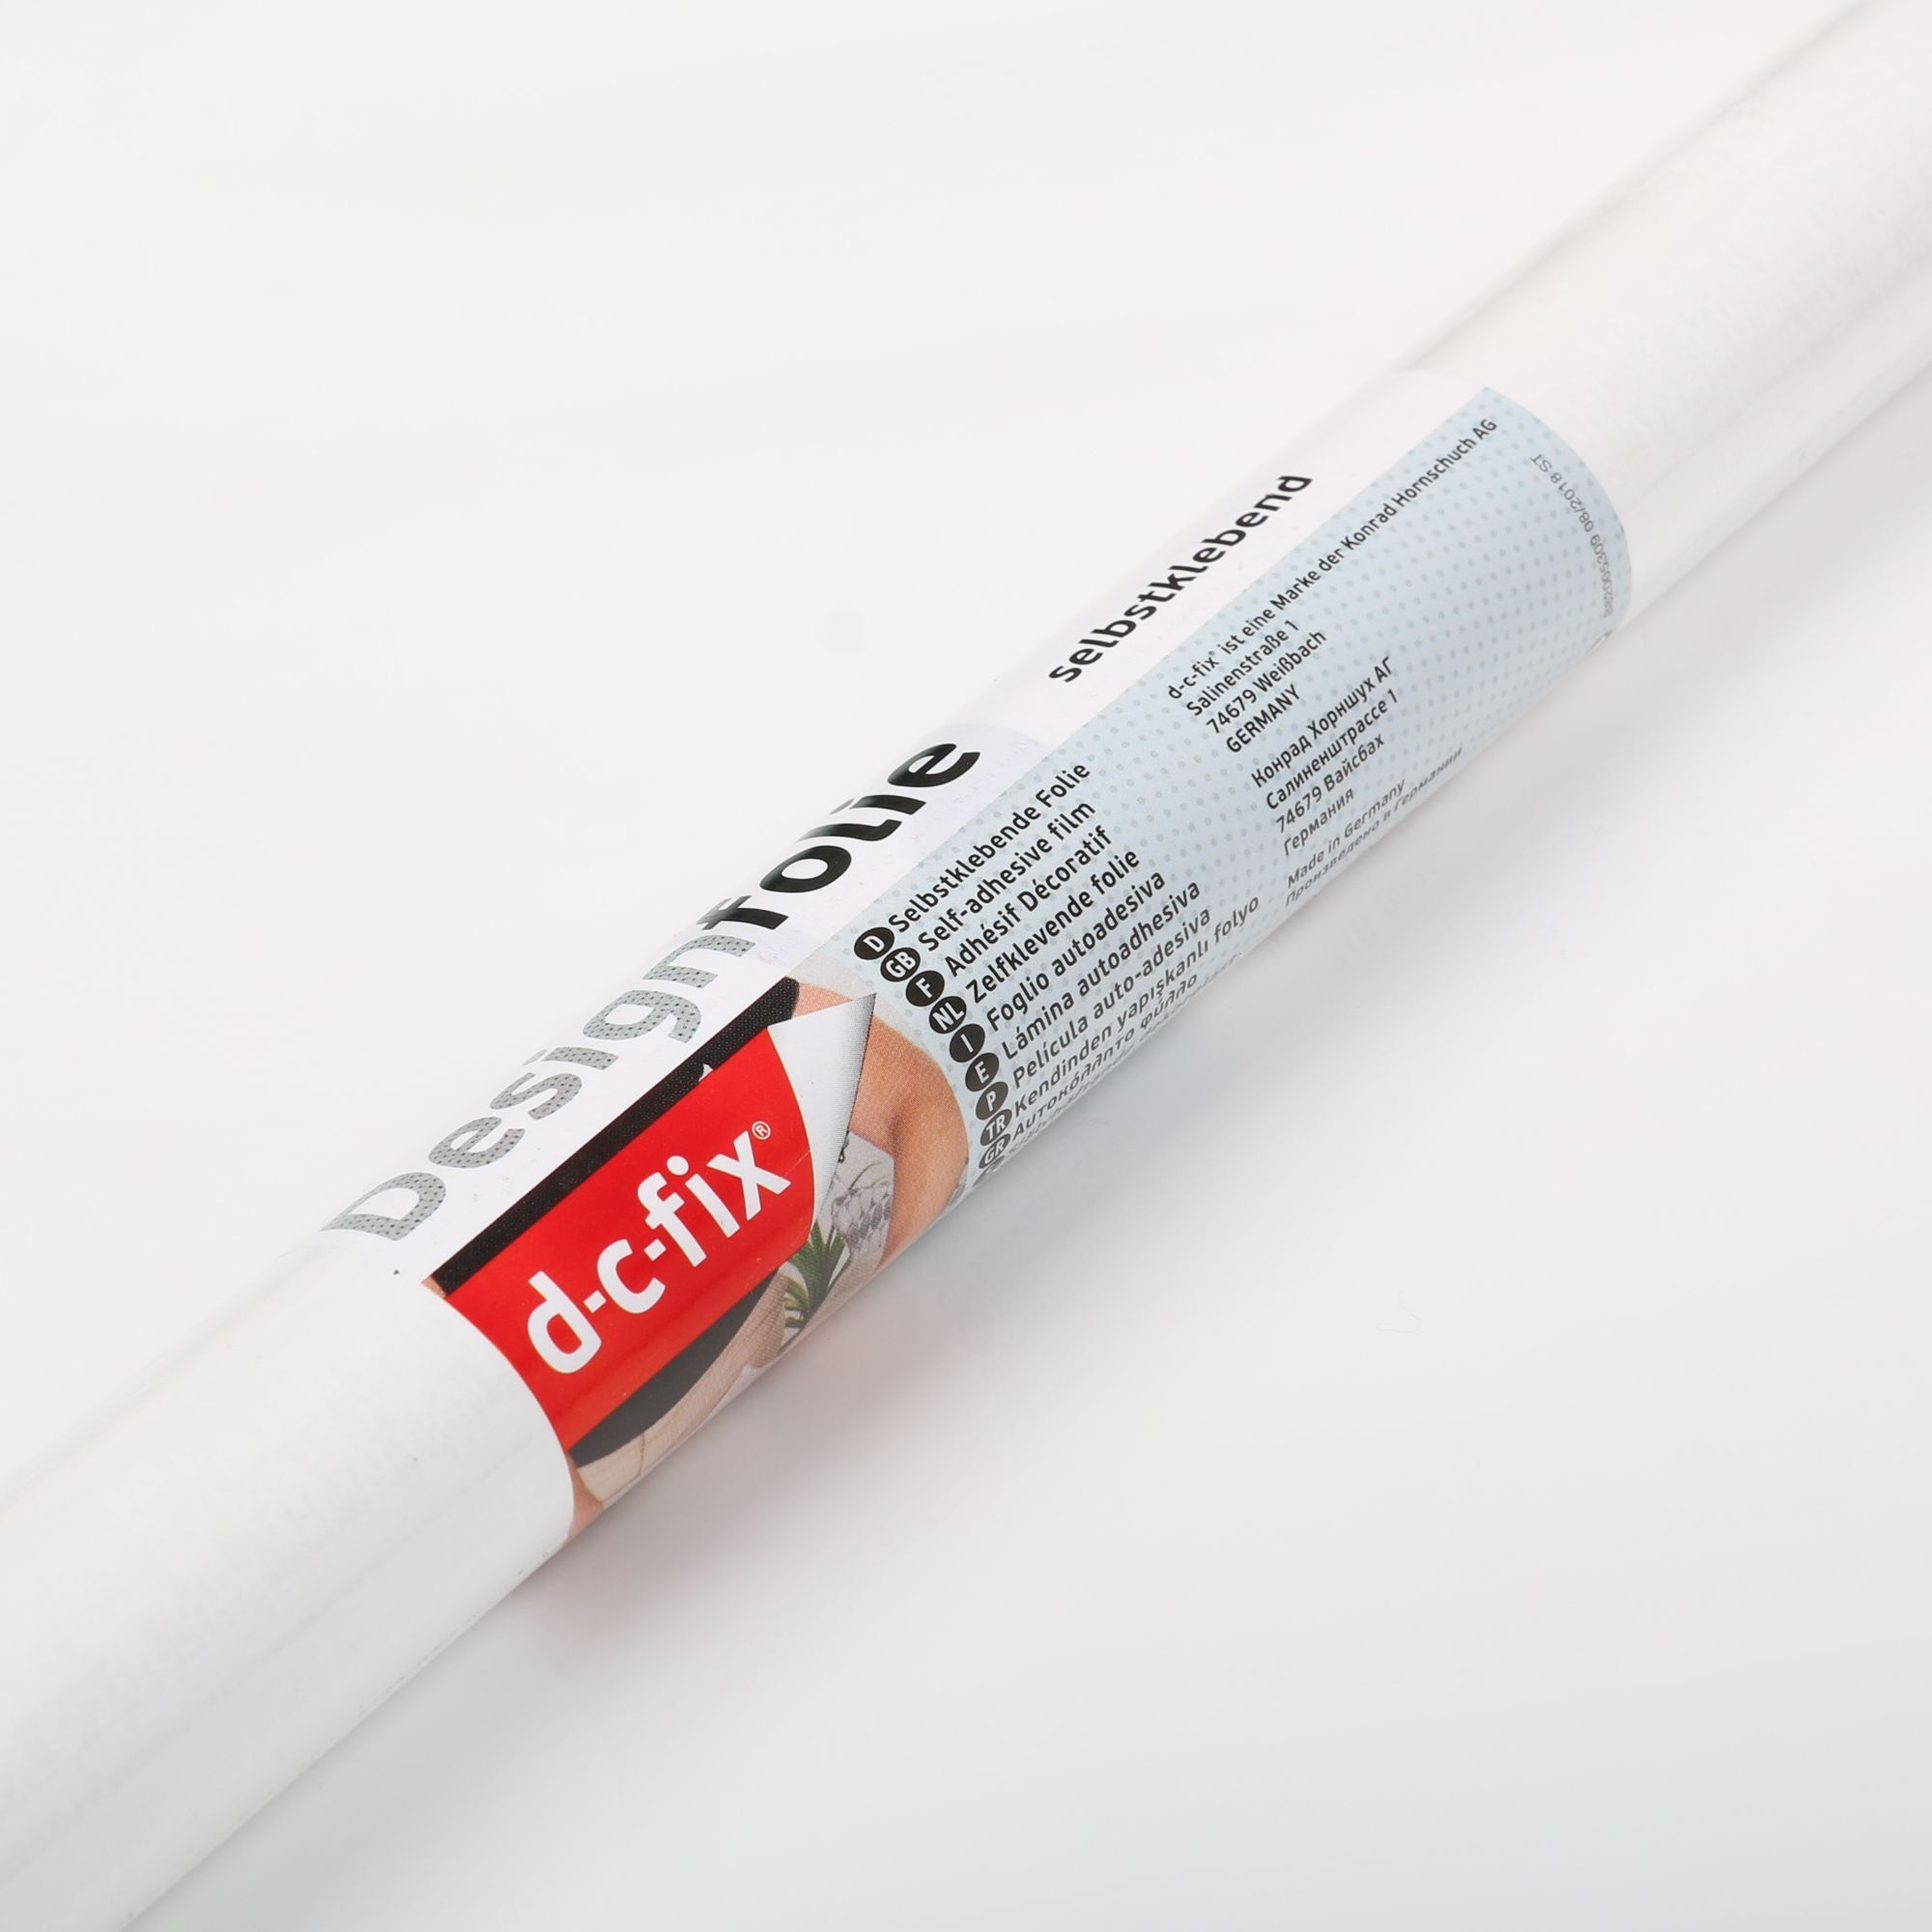 D-C-Fix Gloss White RAL 9016 Sticky Back Vinyl (346-5359) Extra Large 90cm x 2.1m